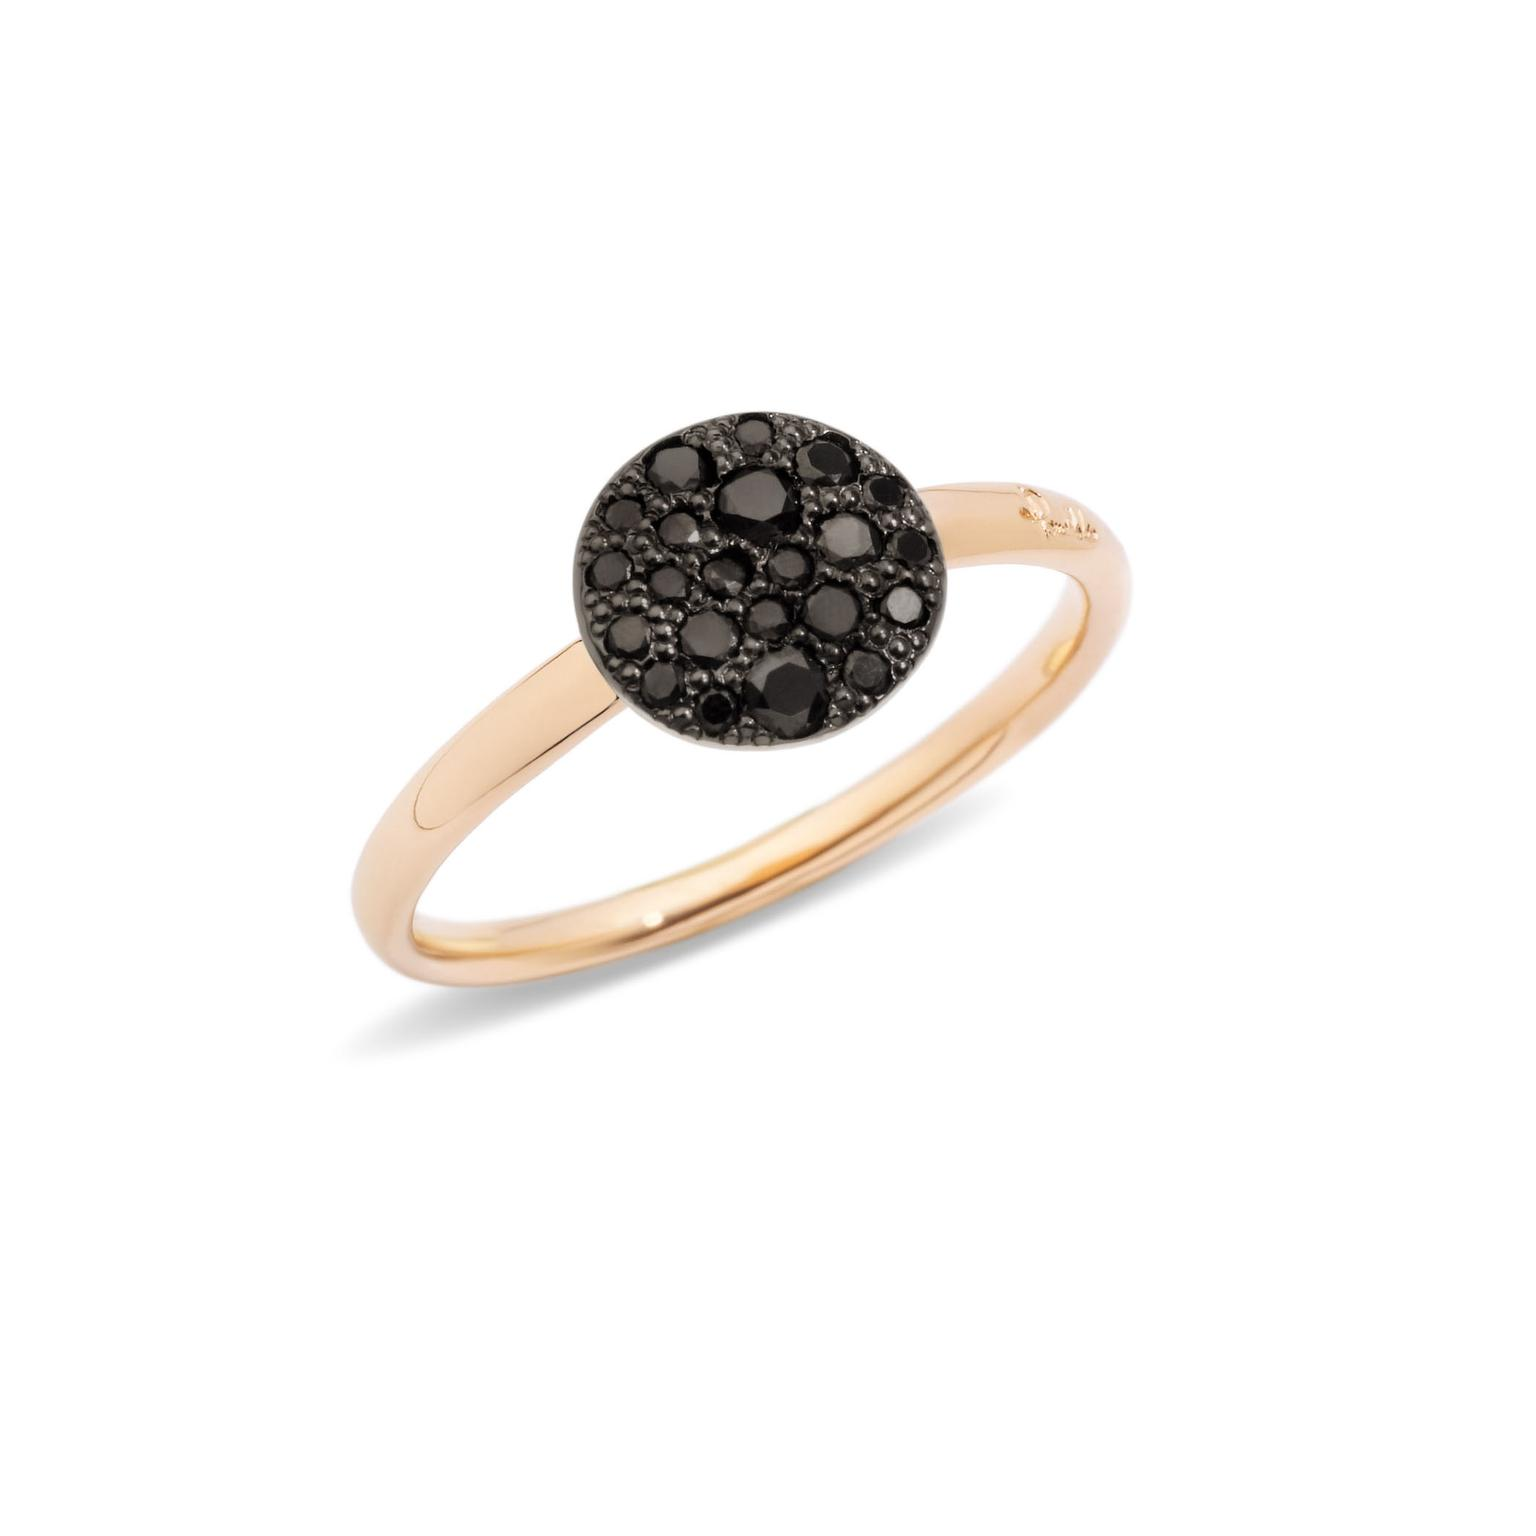 Pomellato-Sabbia-Black-Diamond-Ring-Zoom